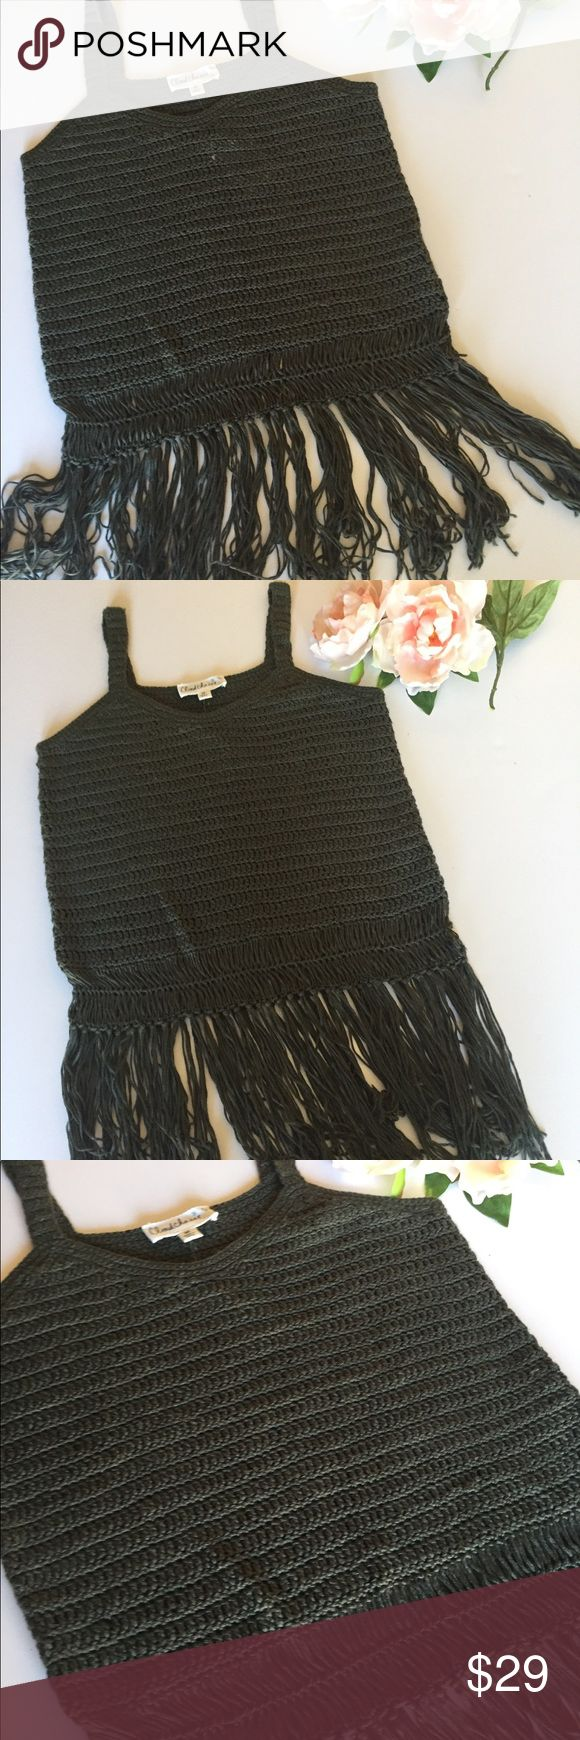 Olive Green Knit fringe tank top Super cute olive green knitted tank with boho fringe detail. New with tags. Bin 3. Tops Tank Tops